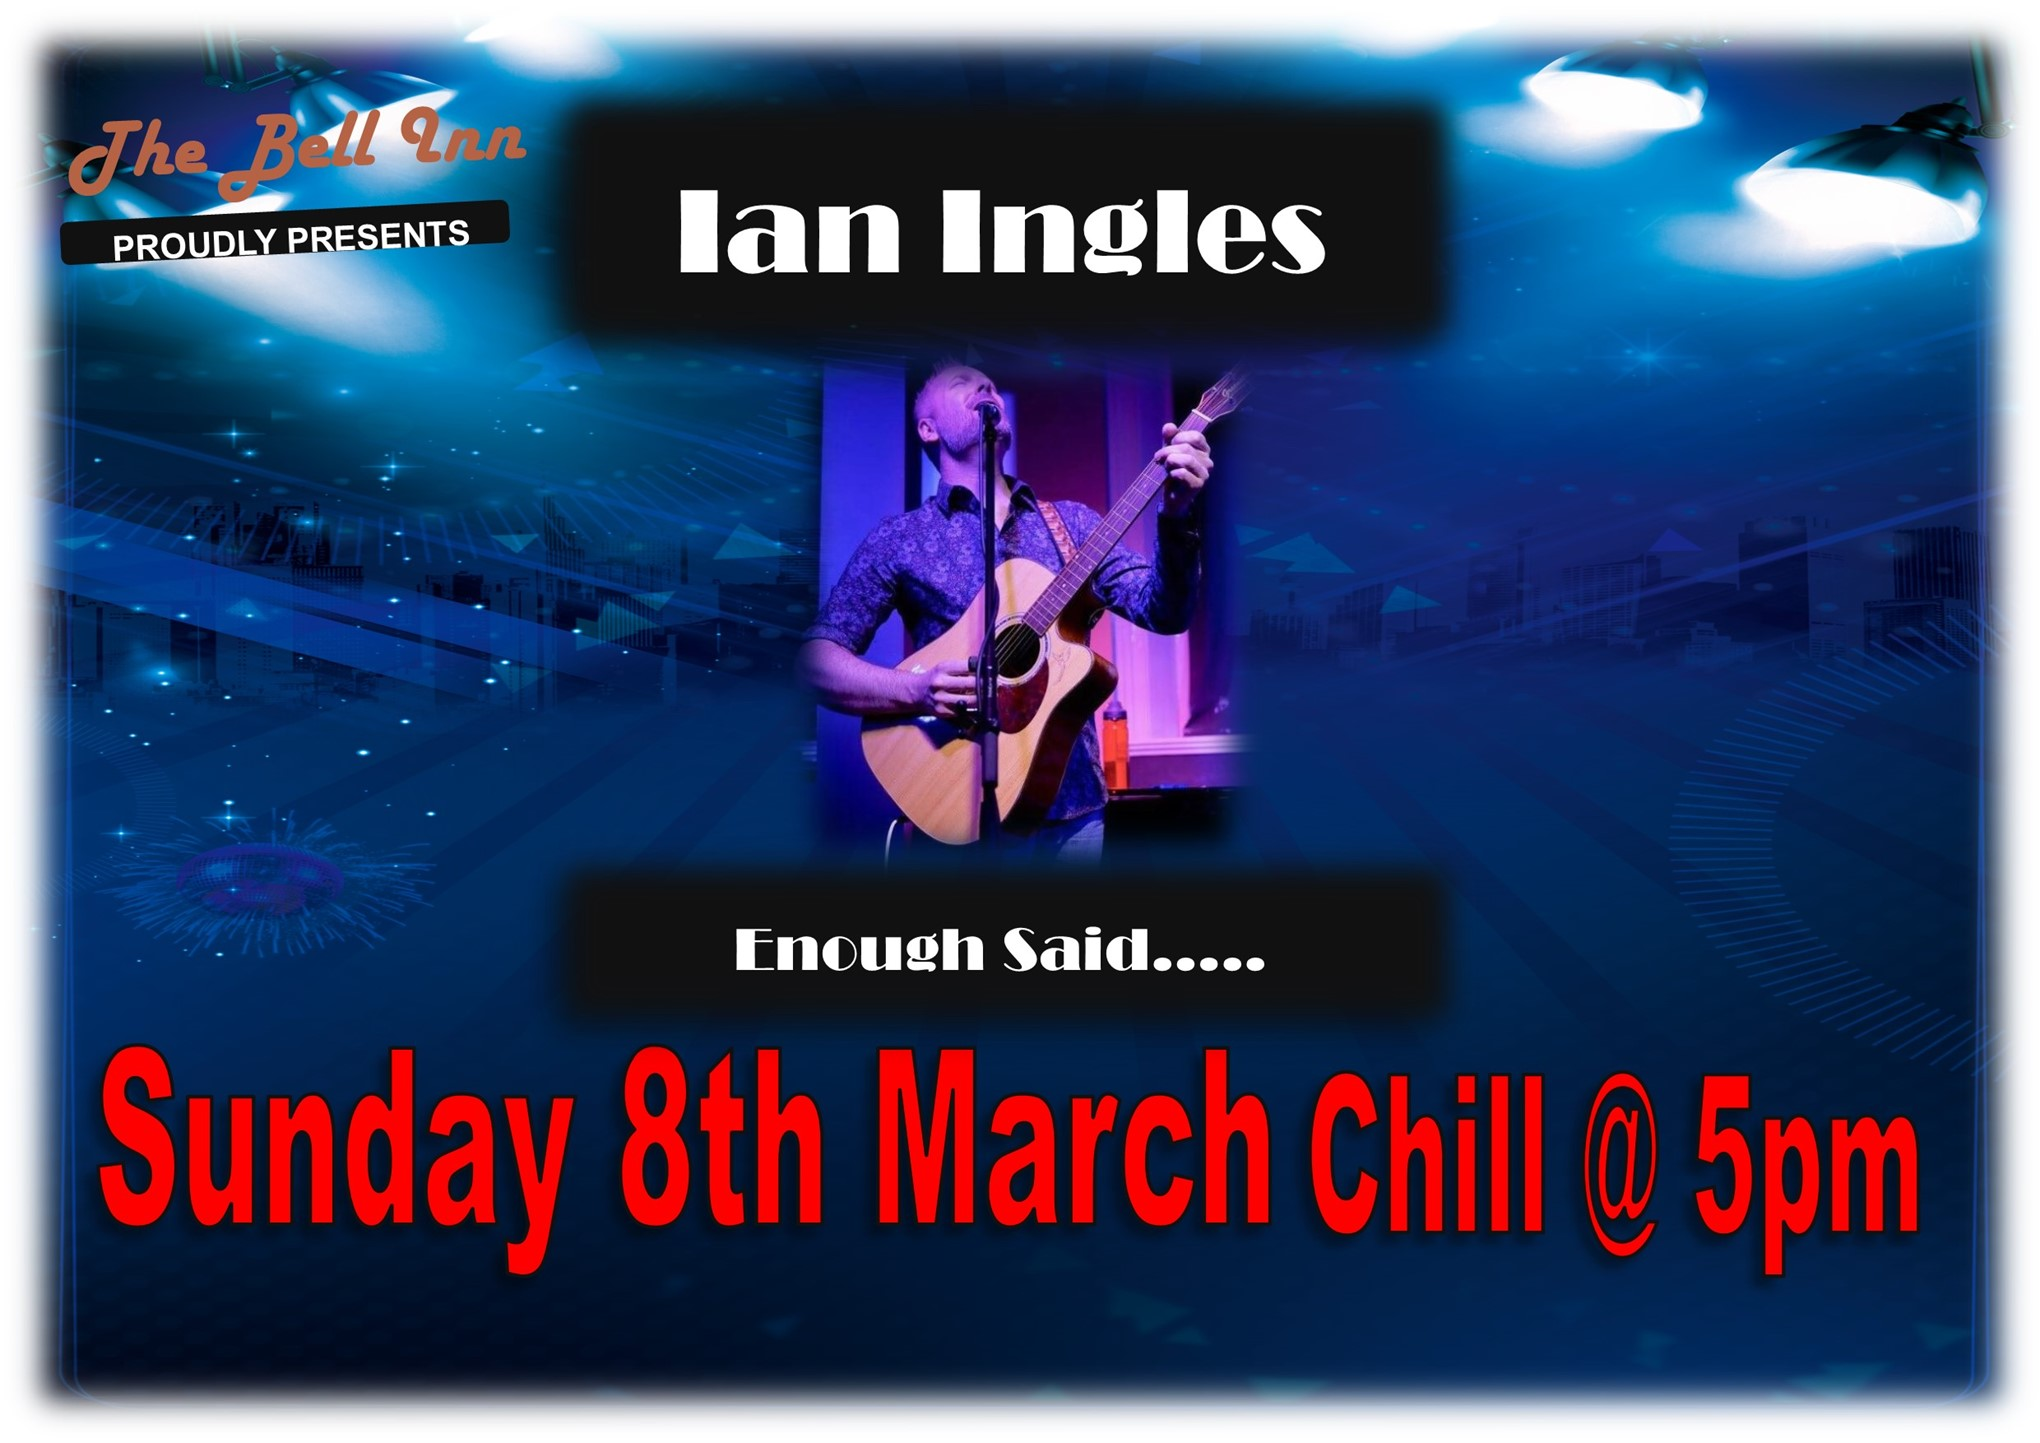 Sunday sessions with Ian Ingles